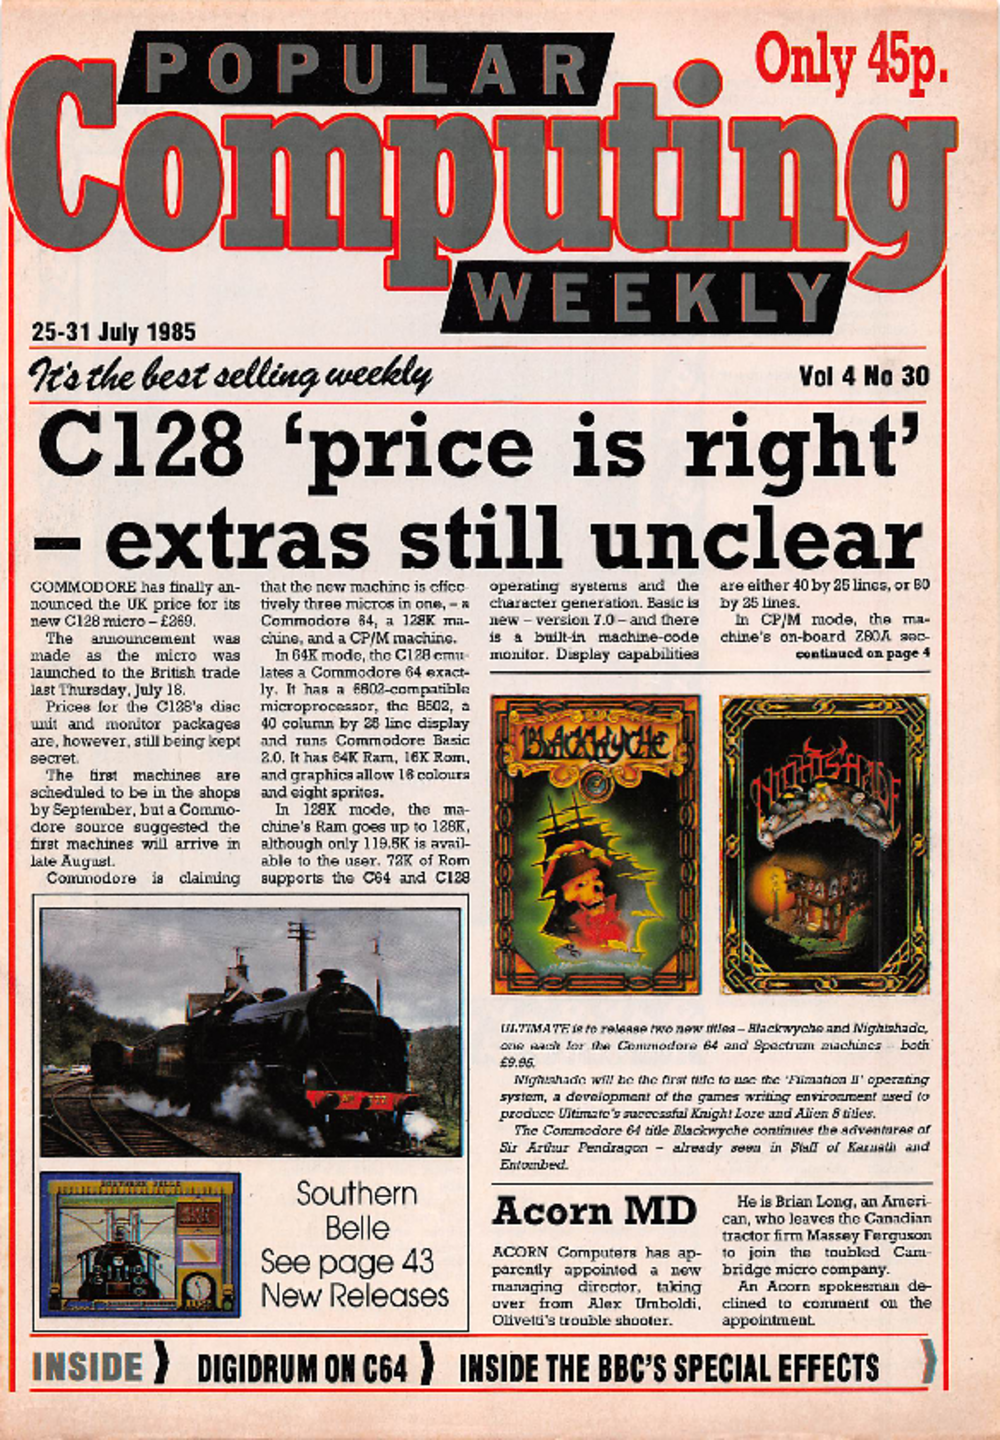 Article: Popular Computing Weekly Vol 4 No 30 - 25-31 July 1985